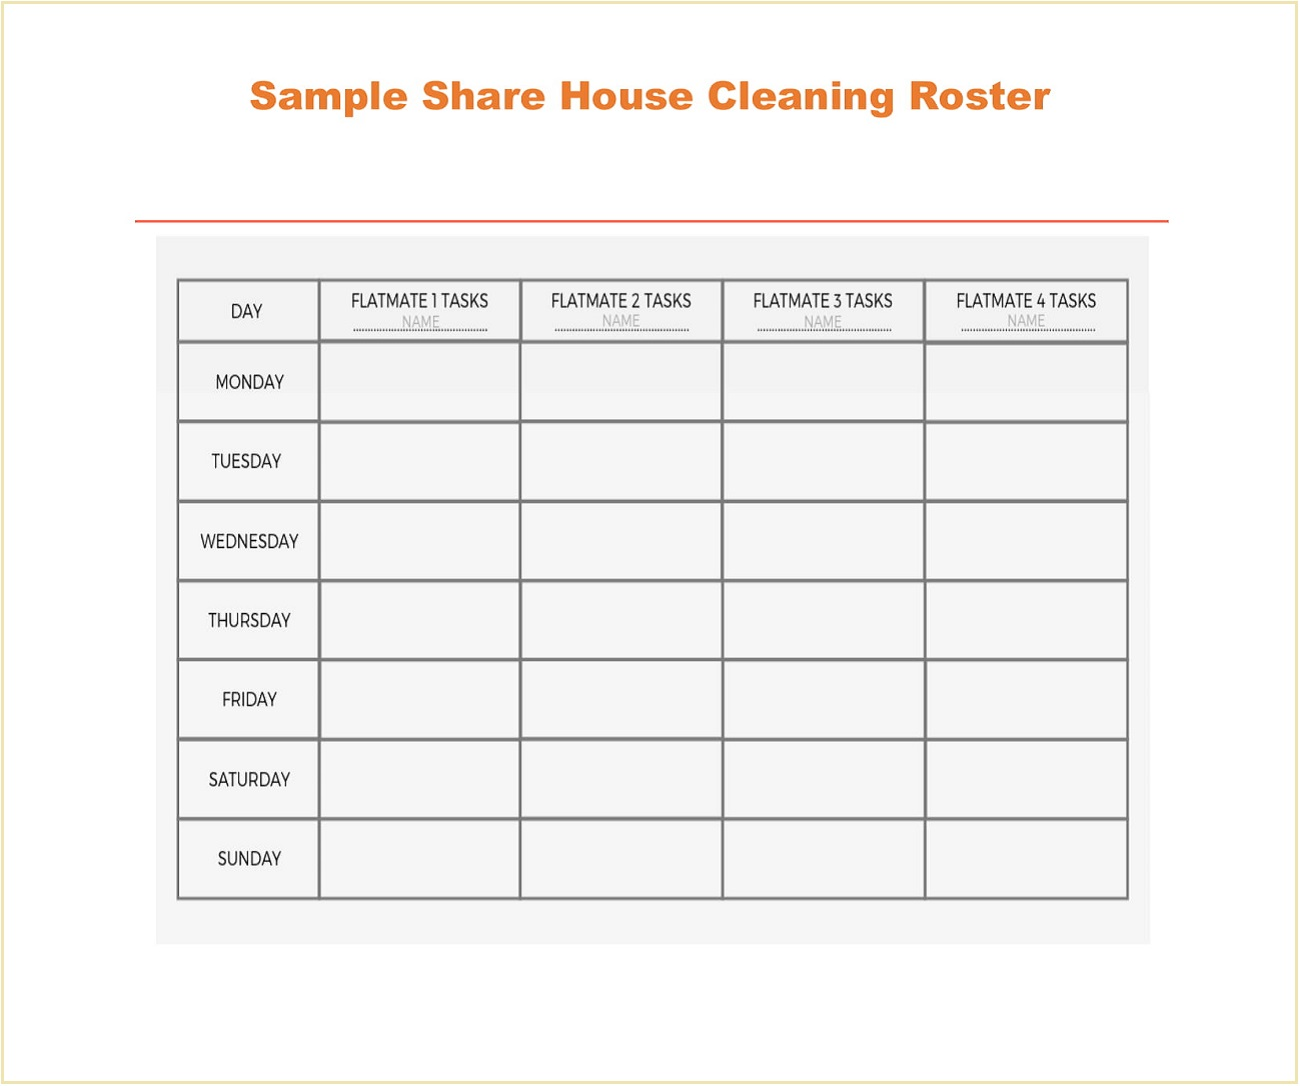 Sample Share House Cleaning Roster Template Word